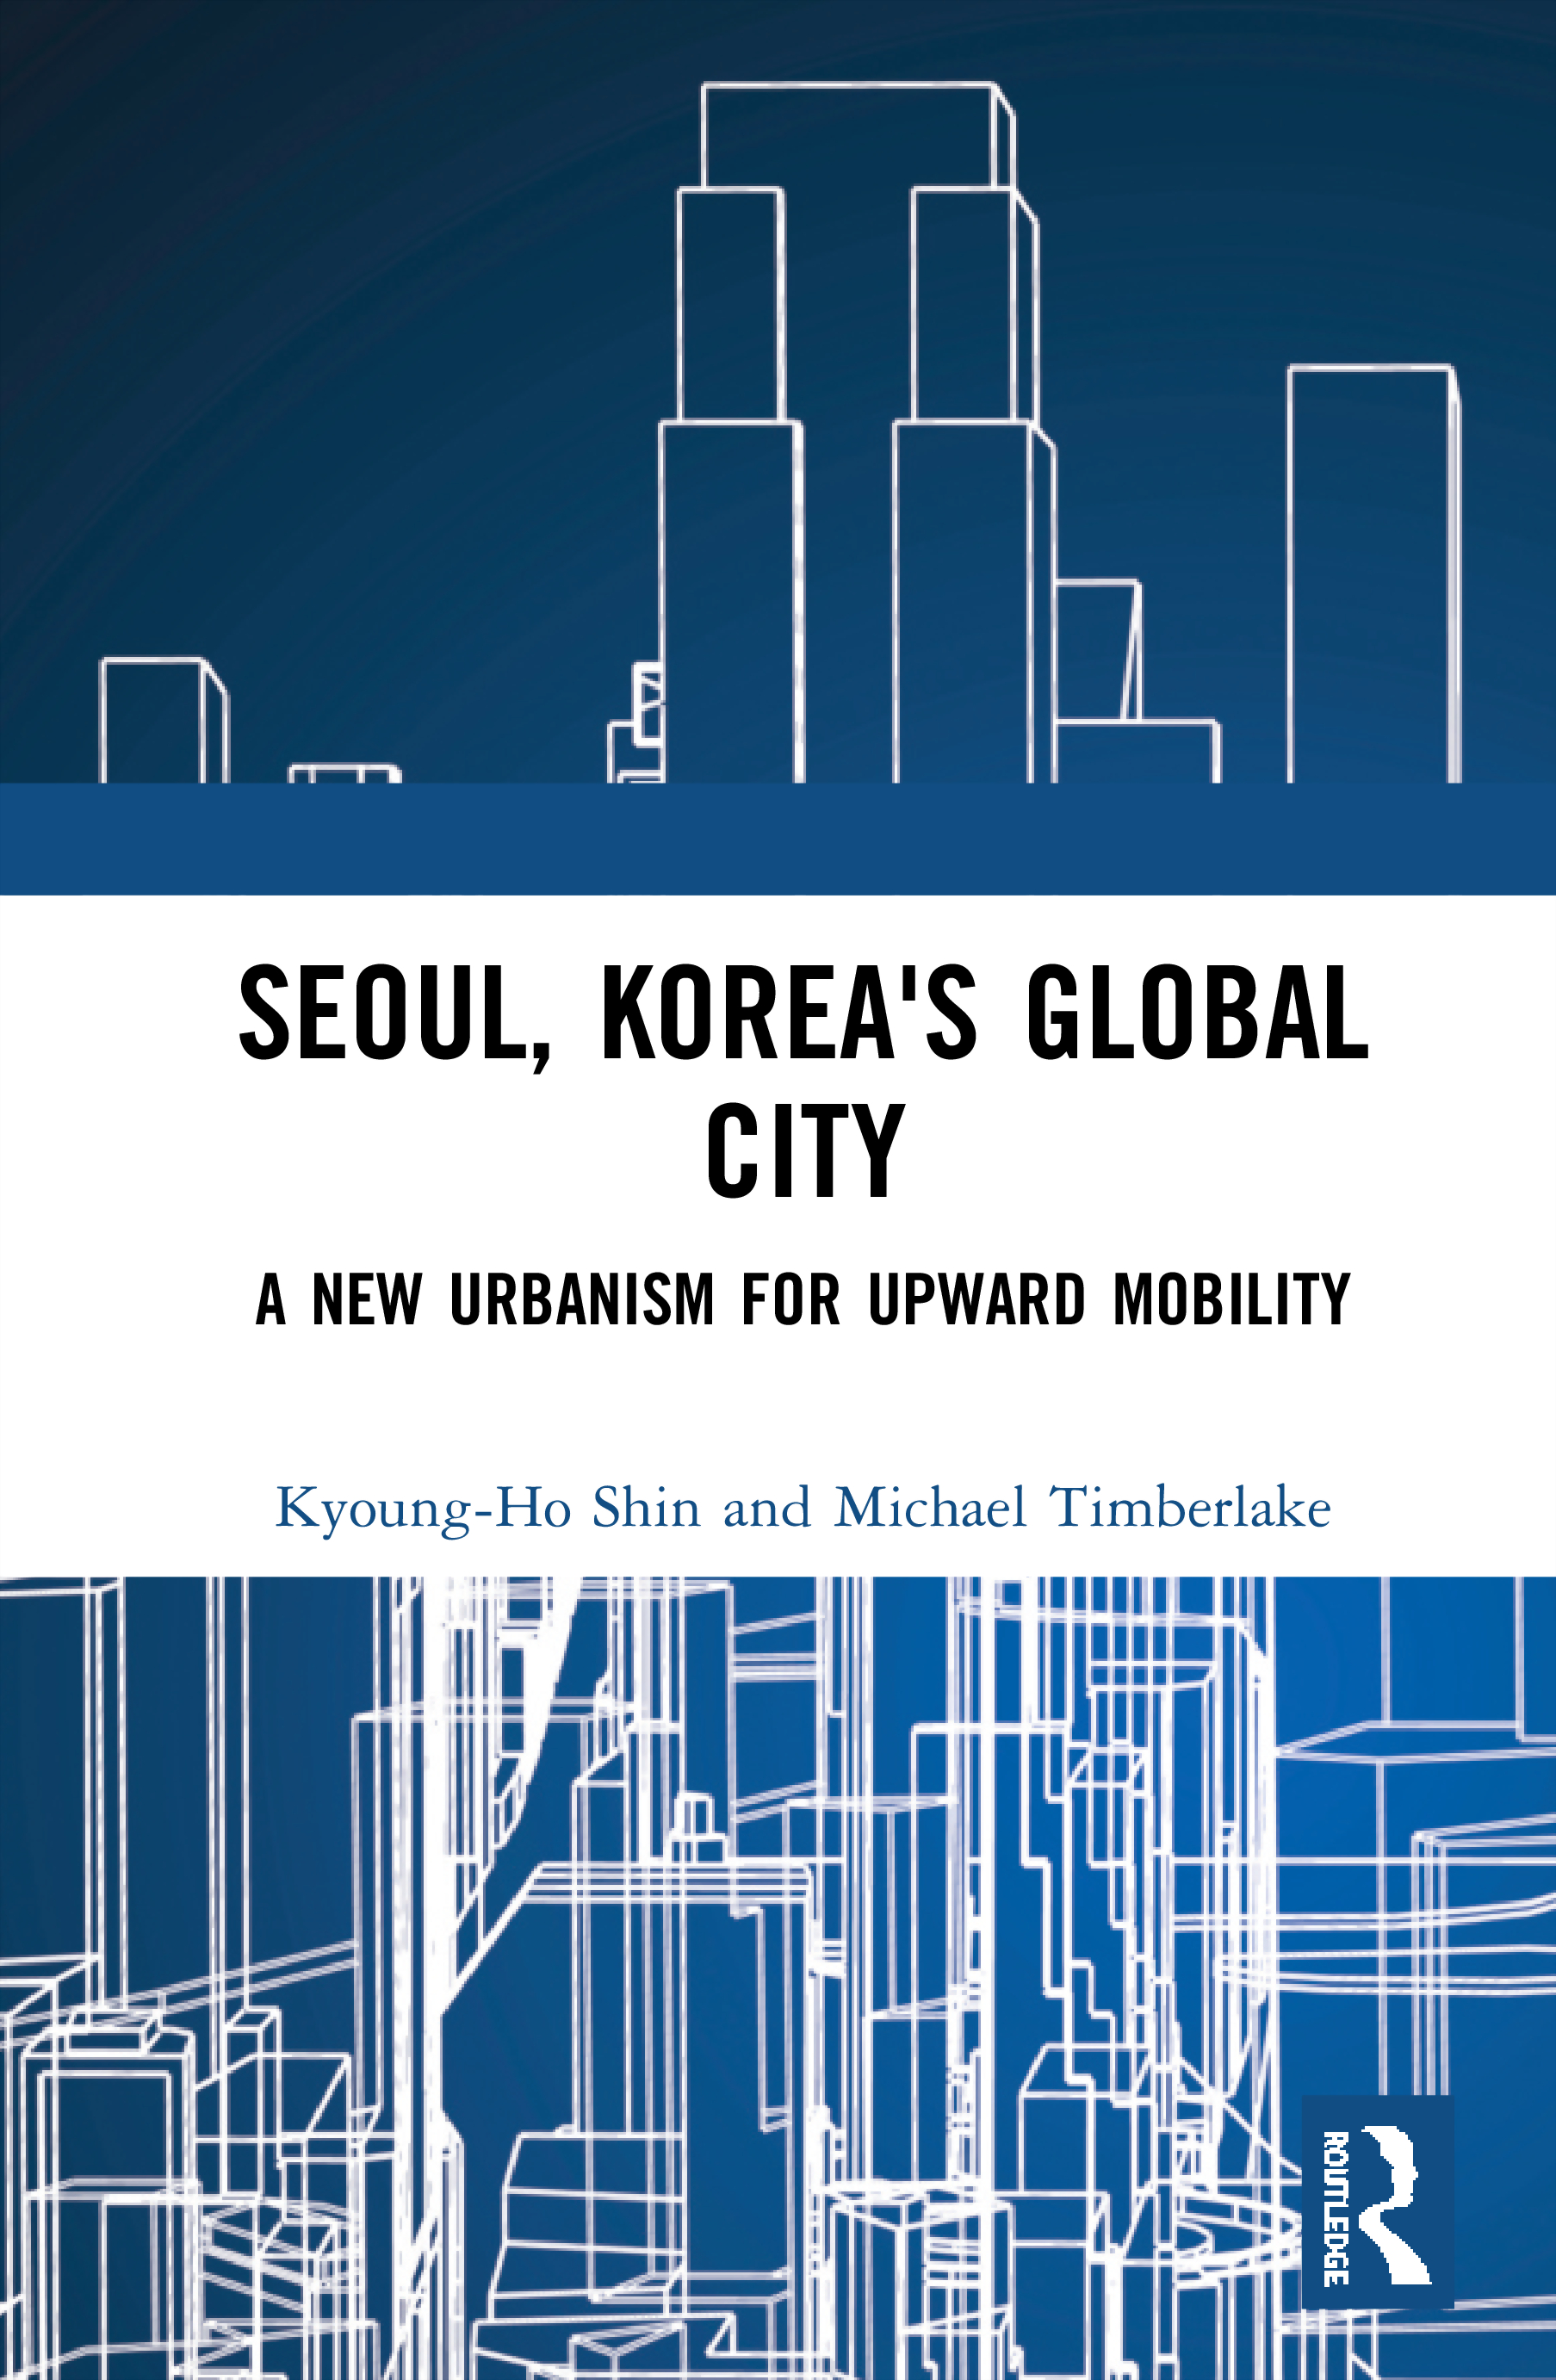 Seoul, Korea's Global City: A New Urbanism for Upward Mobility book cover